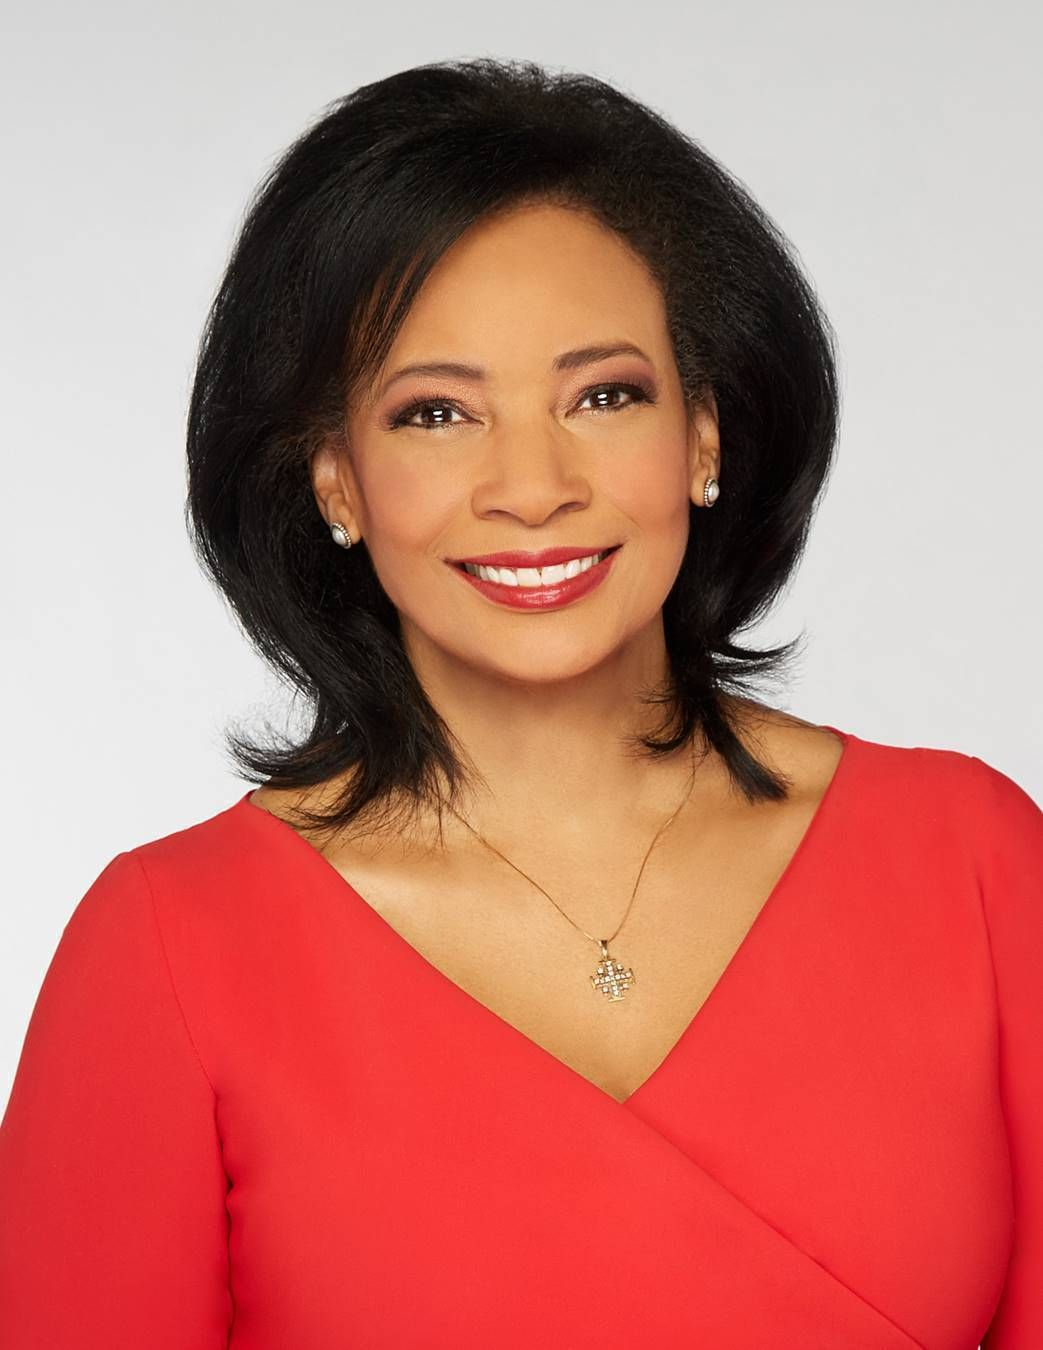 Fox News Channel religion correspondent Lauren Green is pictured in this 2021 publicity photo.